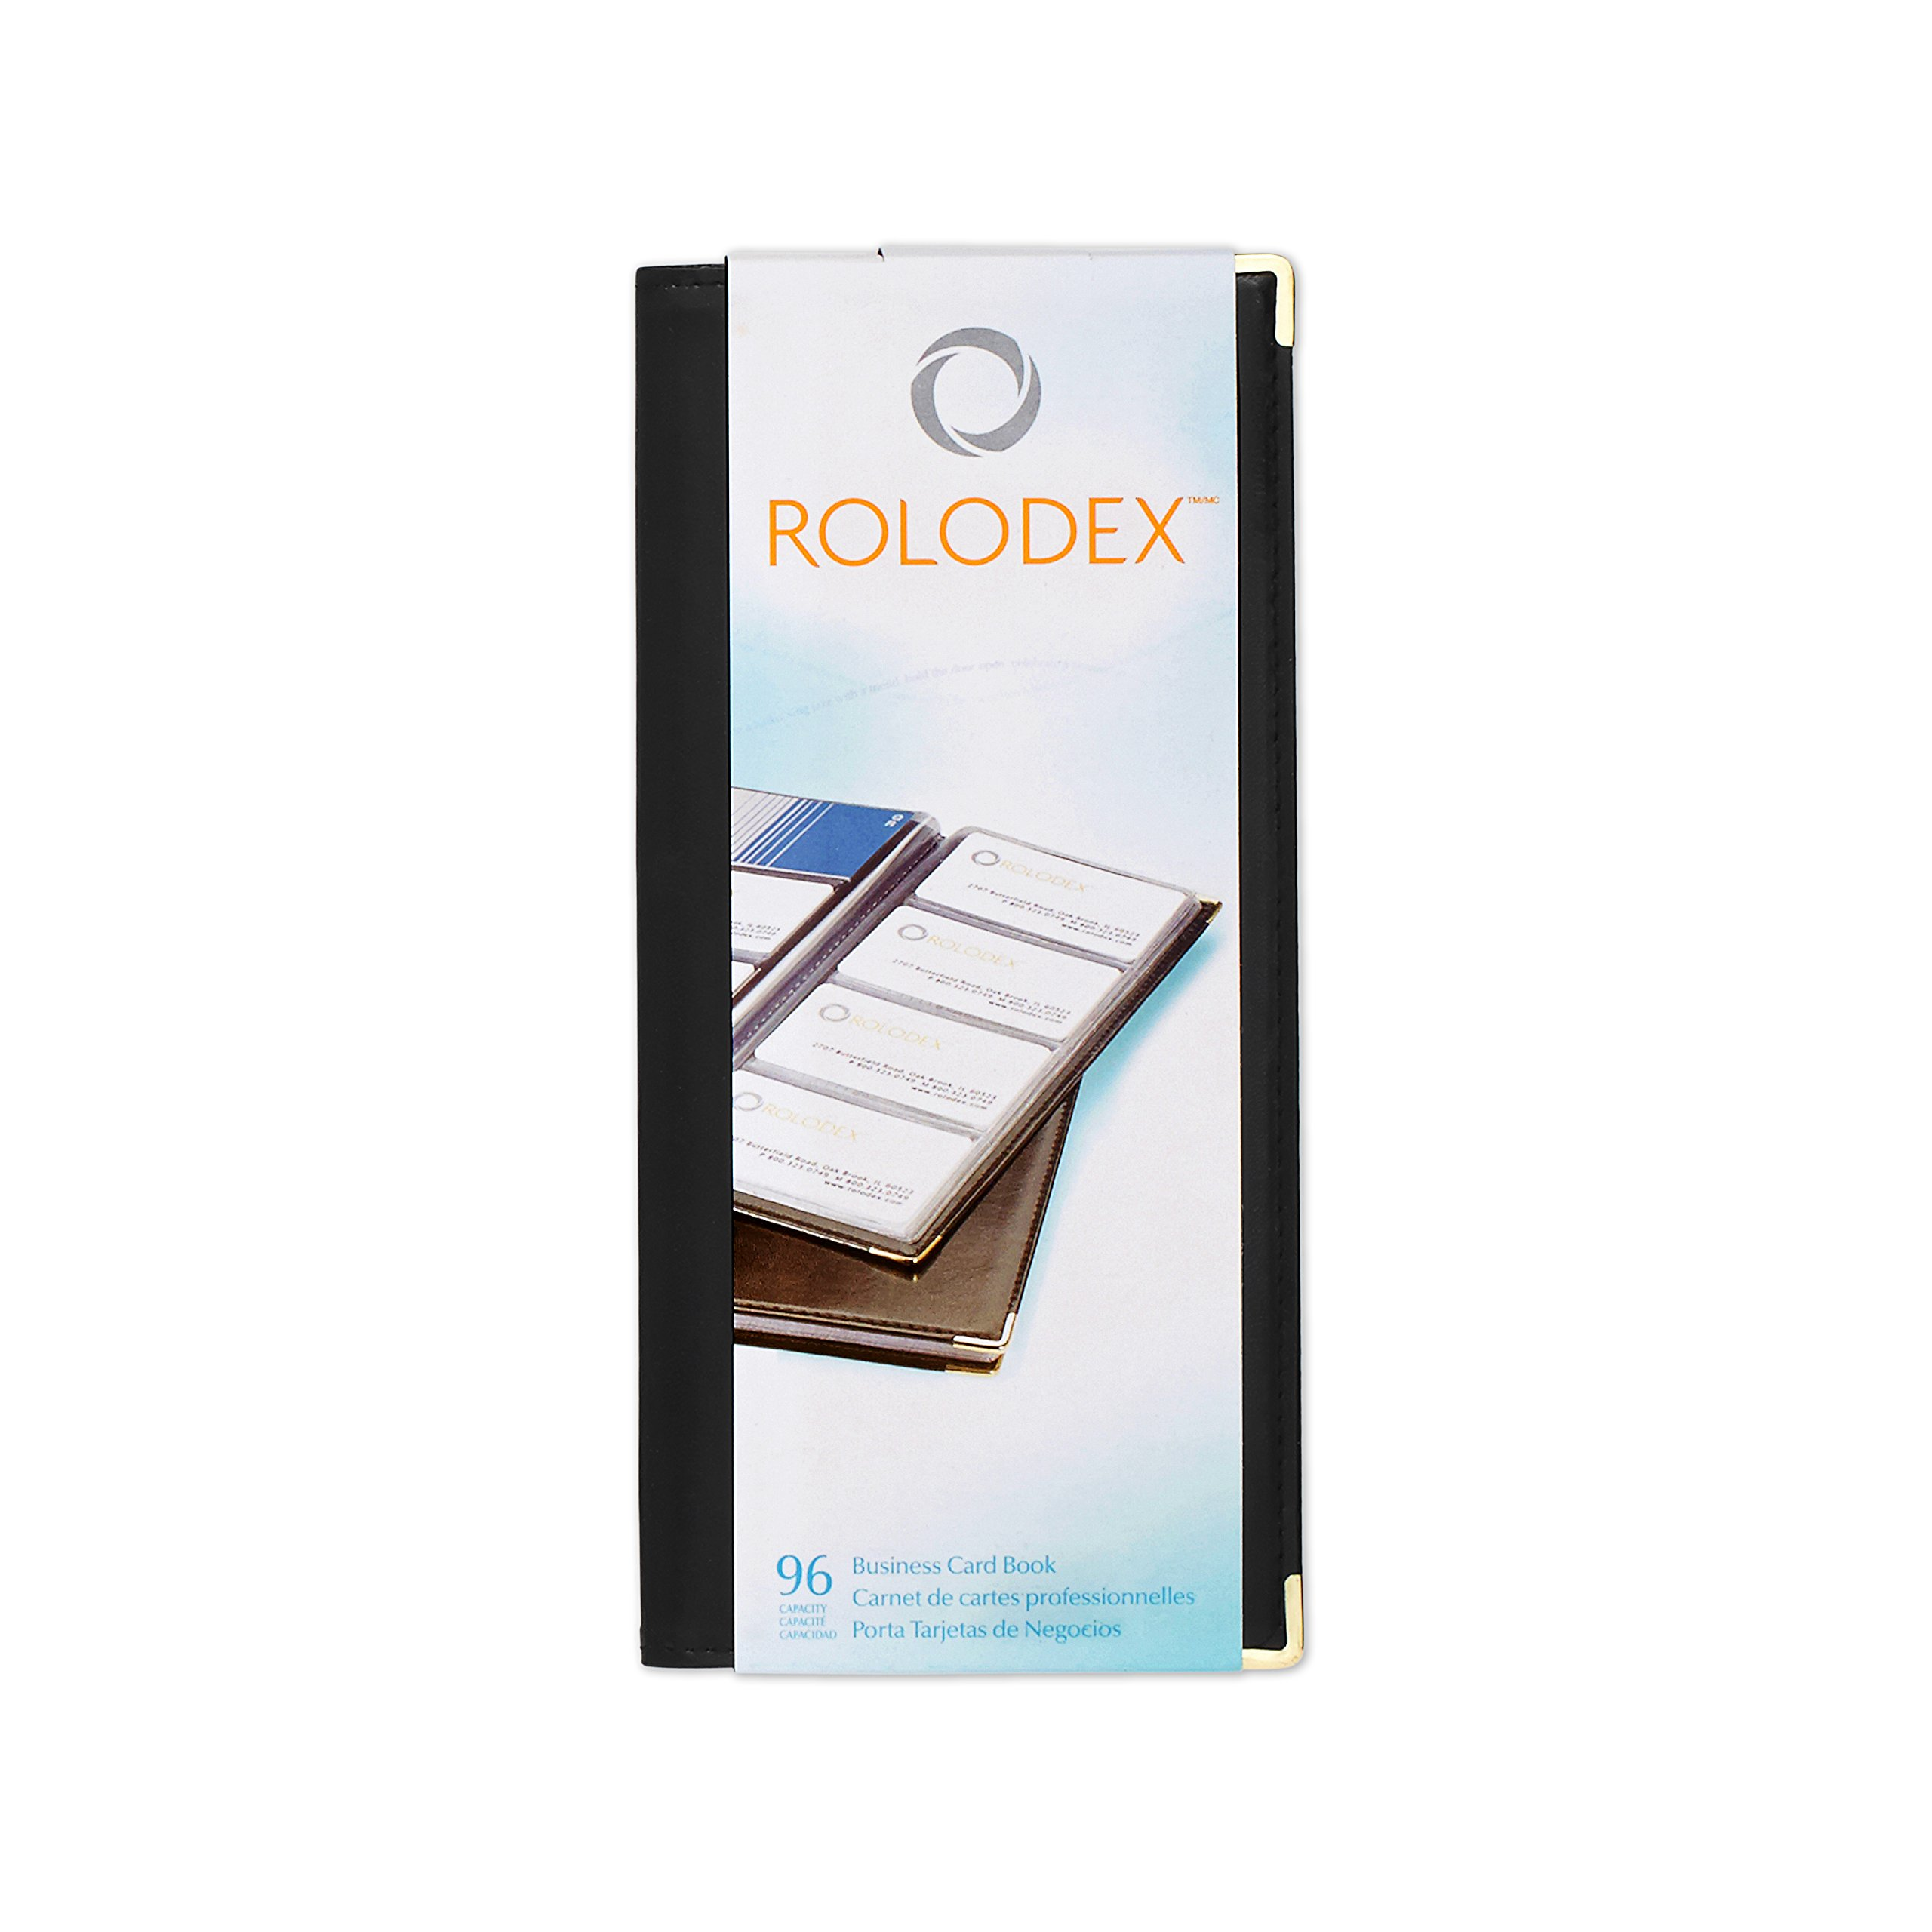 Rolodex Business Card Book 96-Card, Black and Gold (67473)